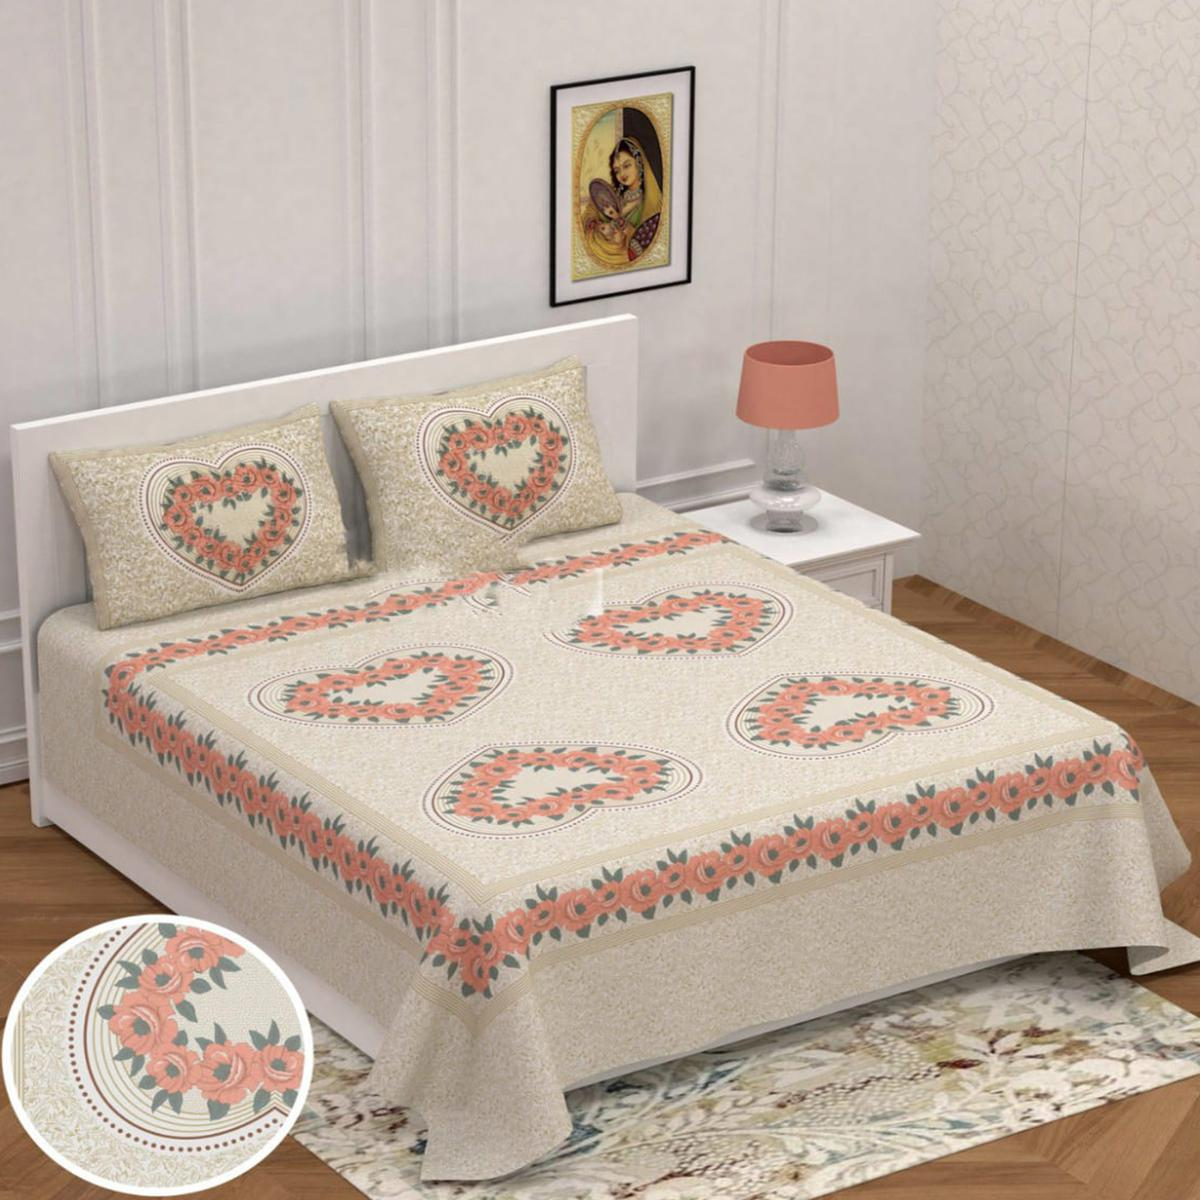 Pooja Fashion - Orange Colored Printed King Cotton Bedsheet With 2 Pillow Cover